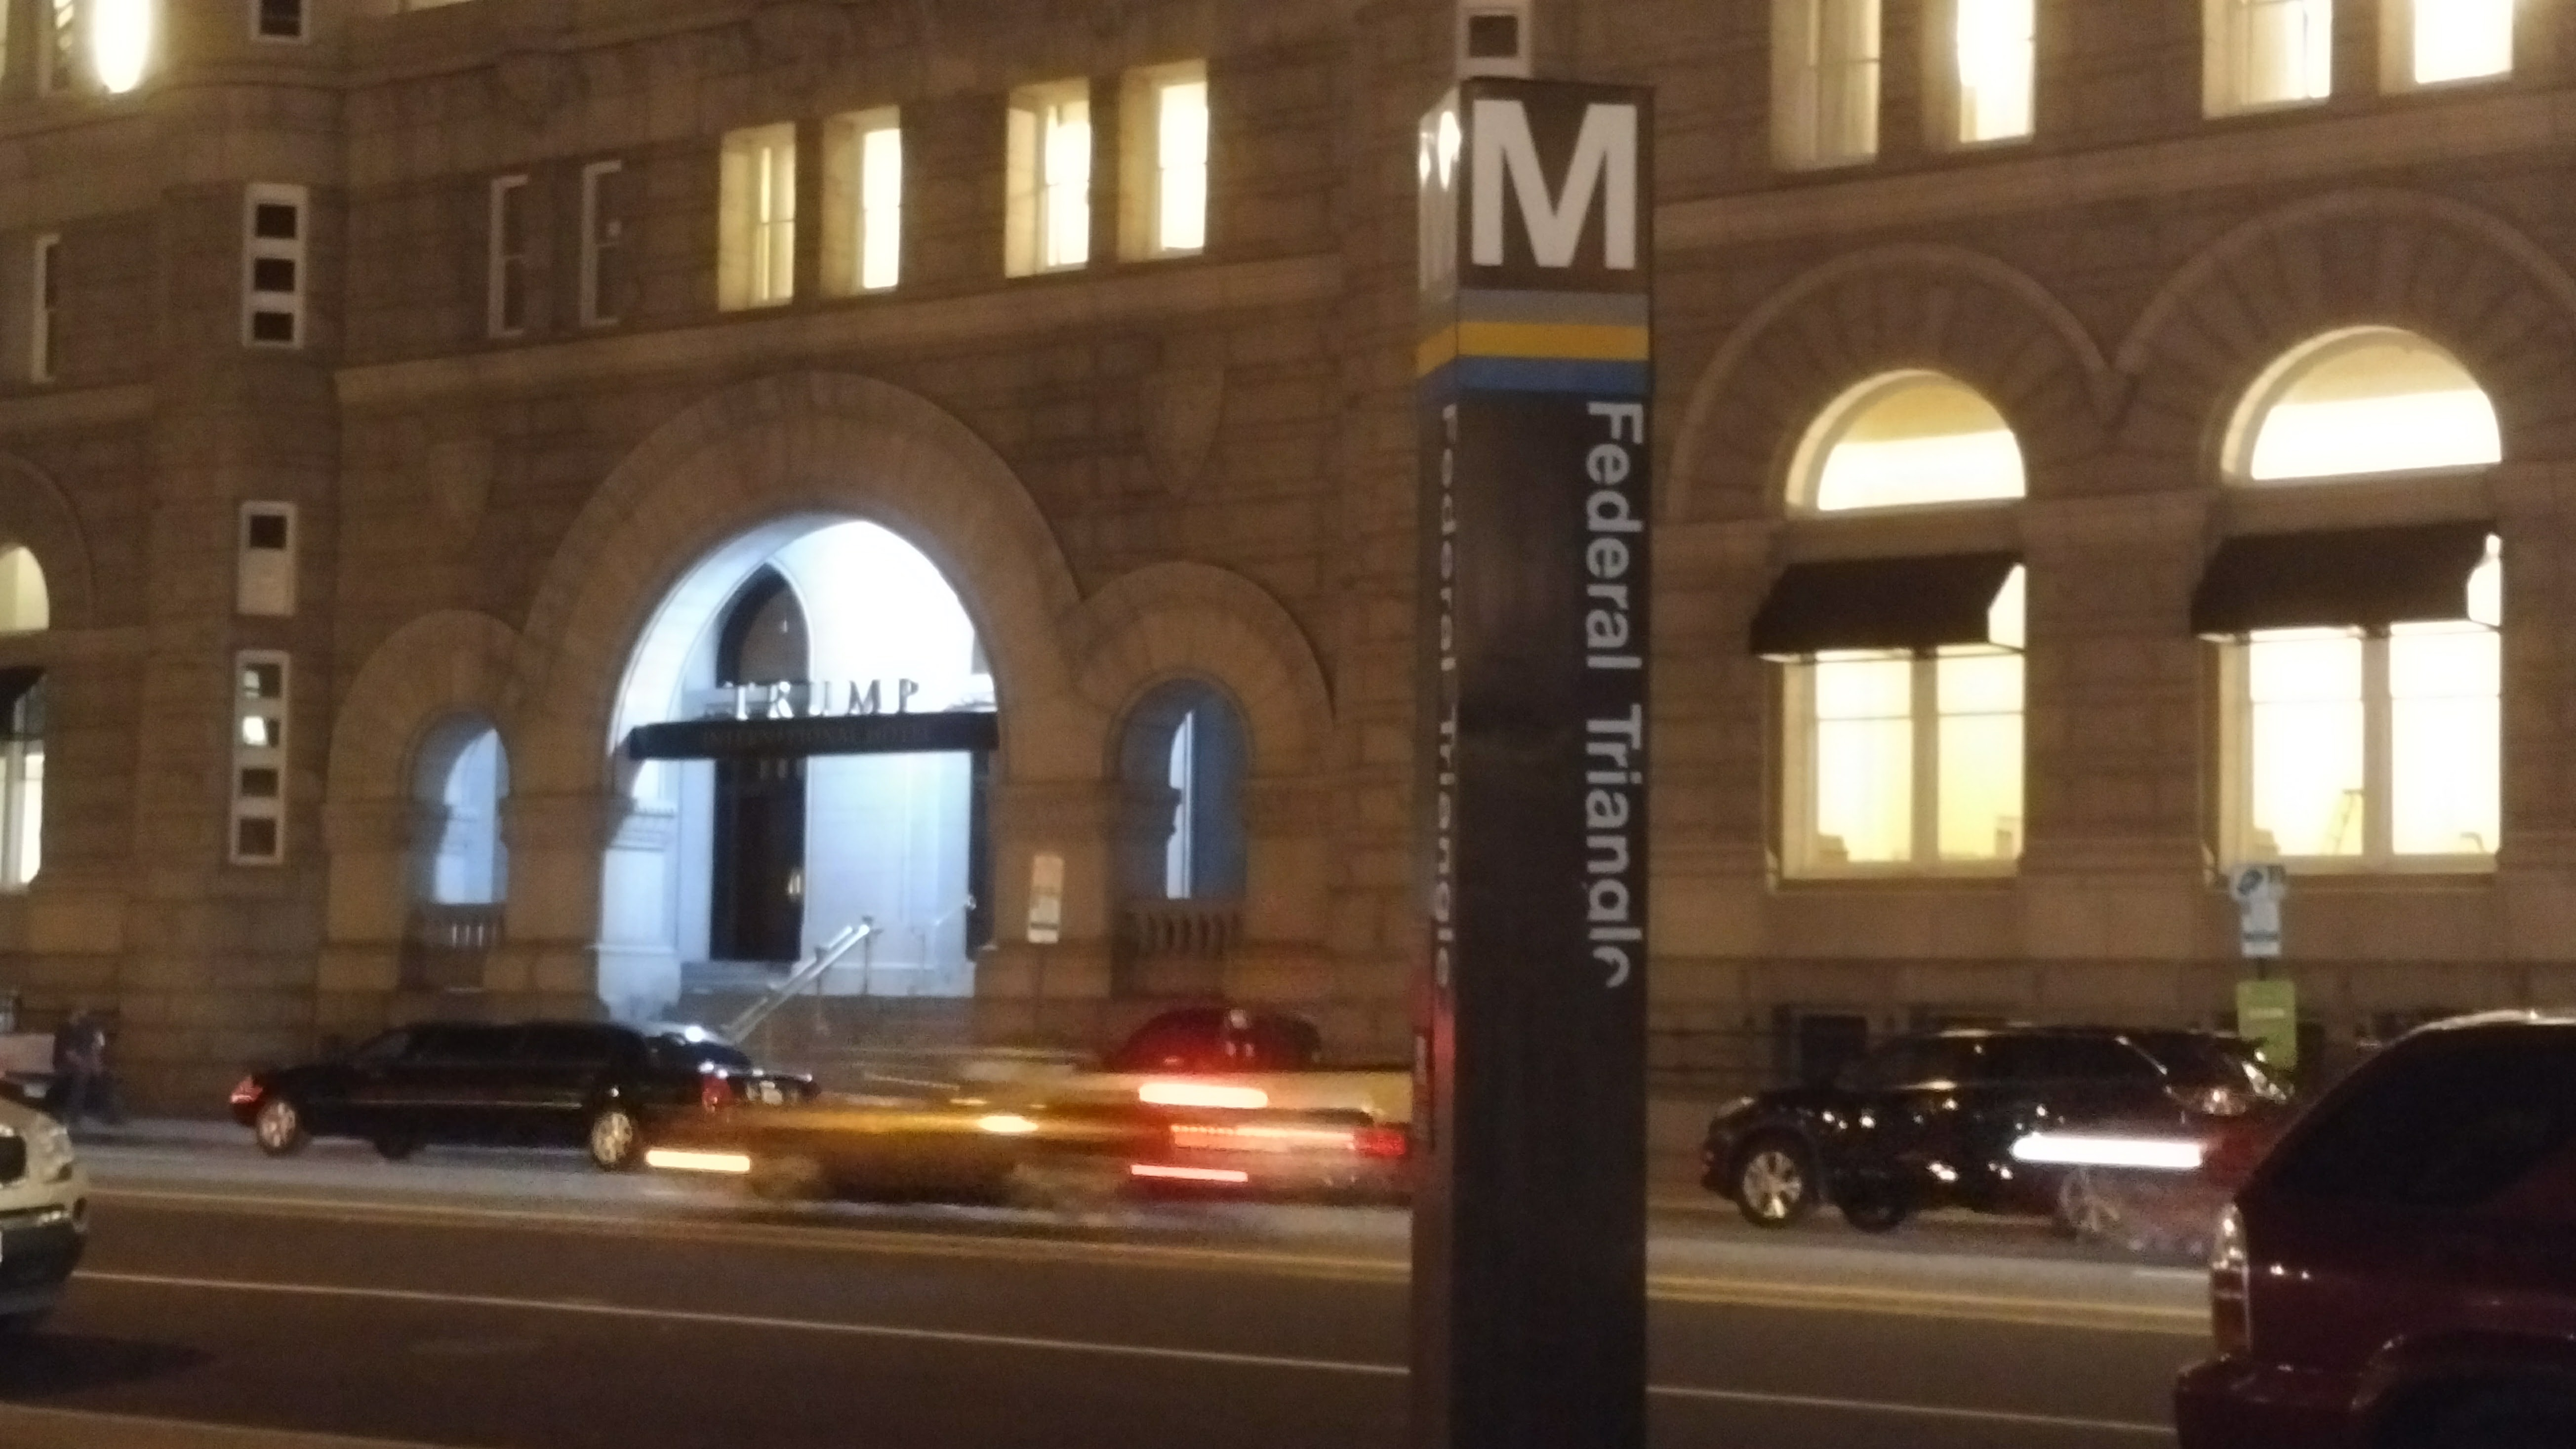 Trump International Hotel entrance facing the WMATA Federal Triangle